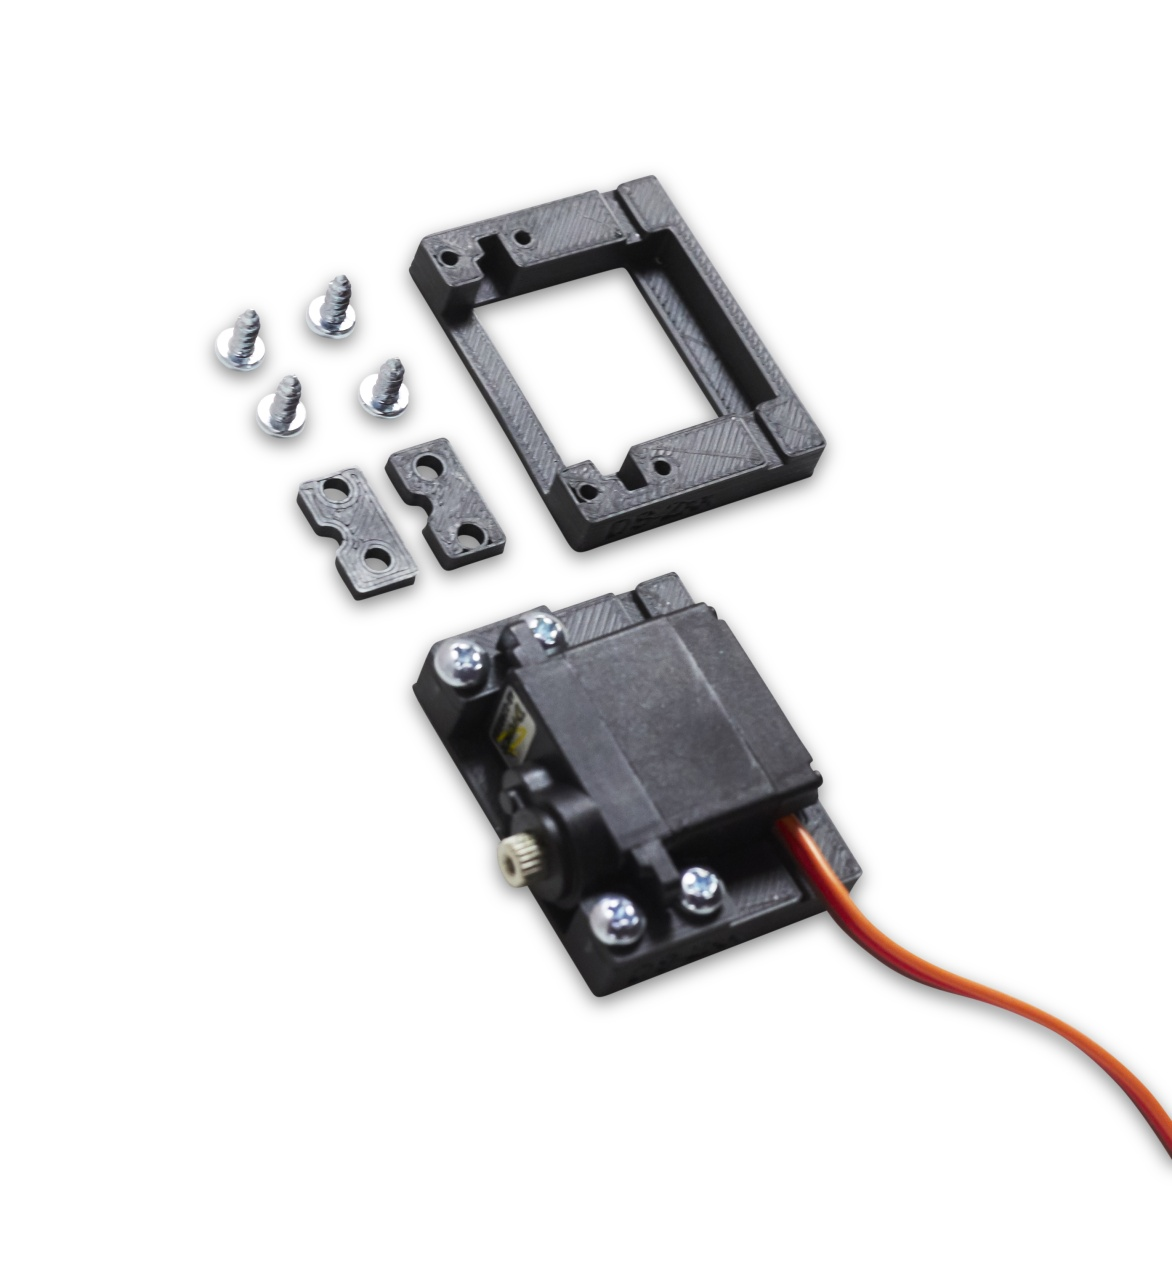 Accessories for Servos